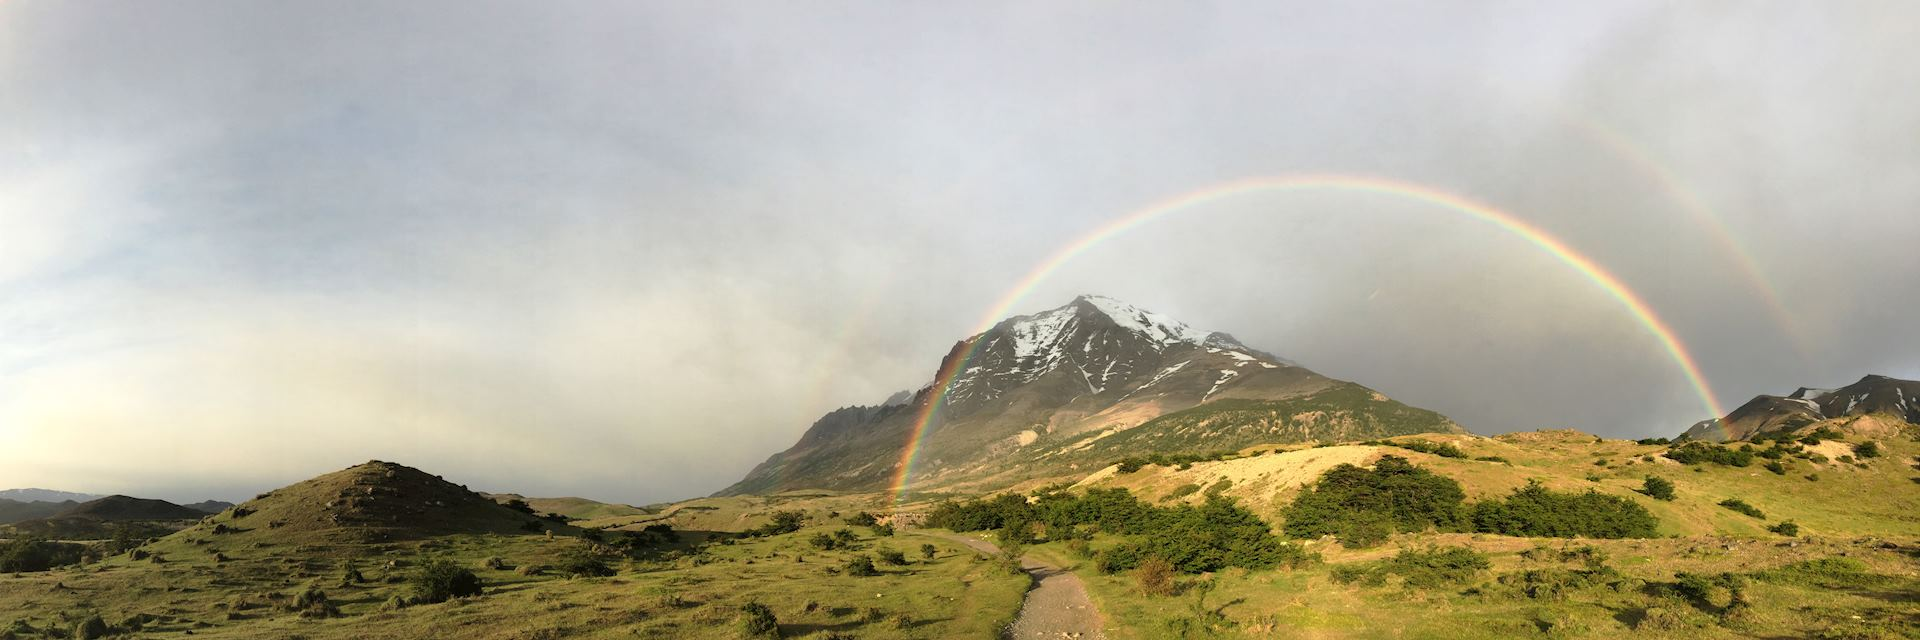 Rainbow in mountains in Chile